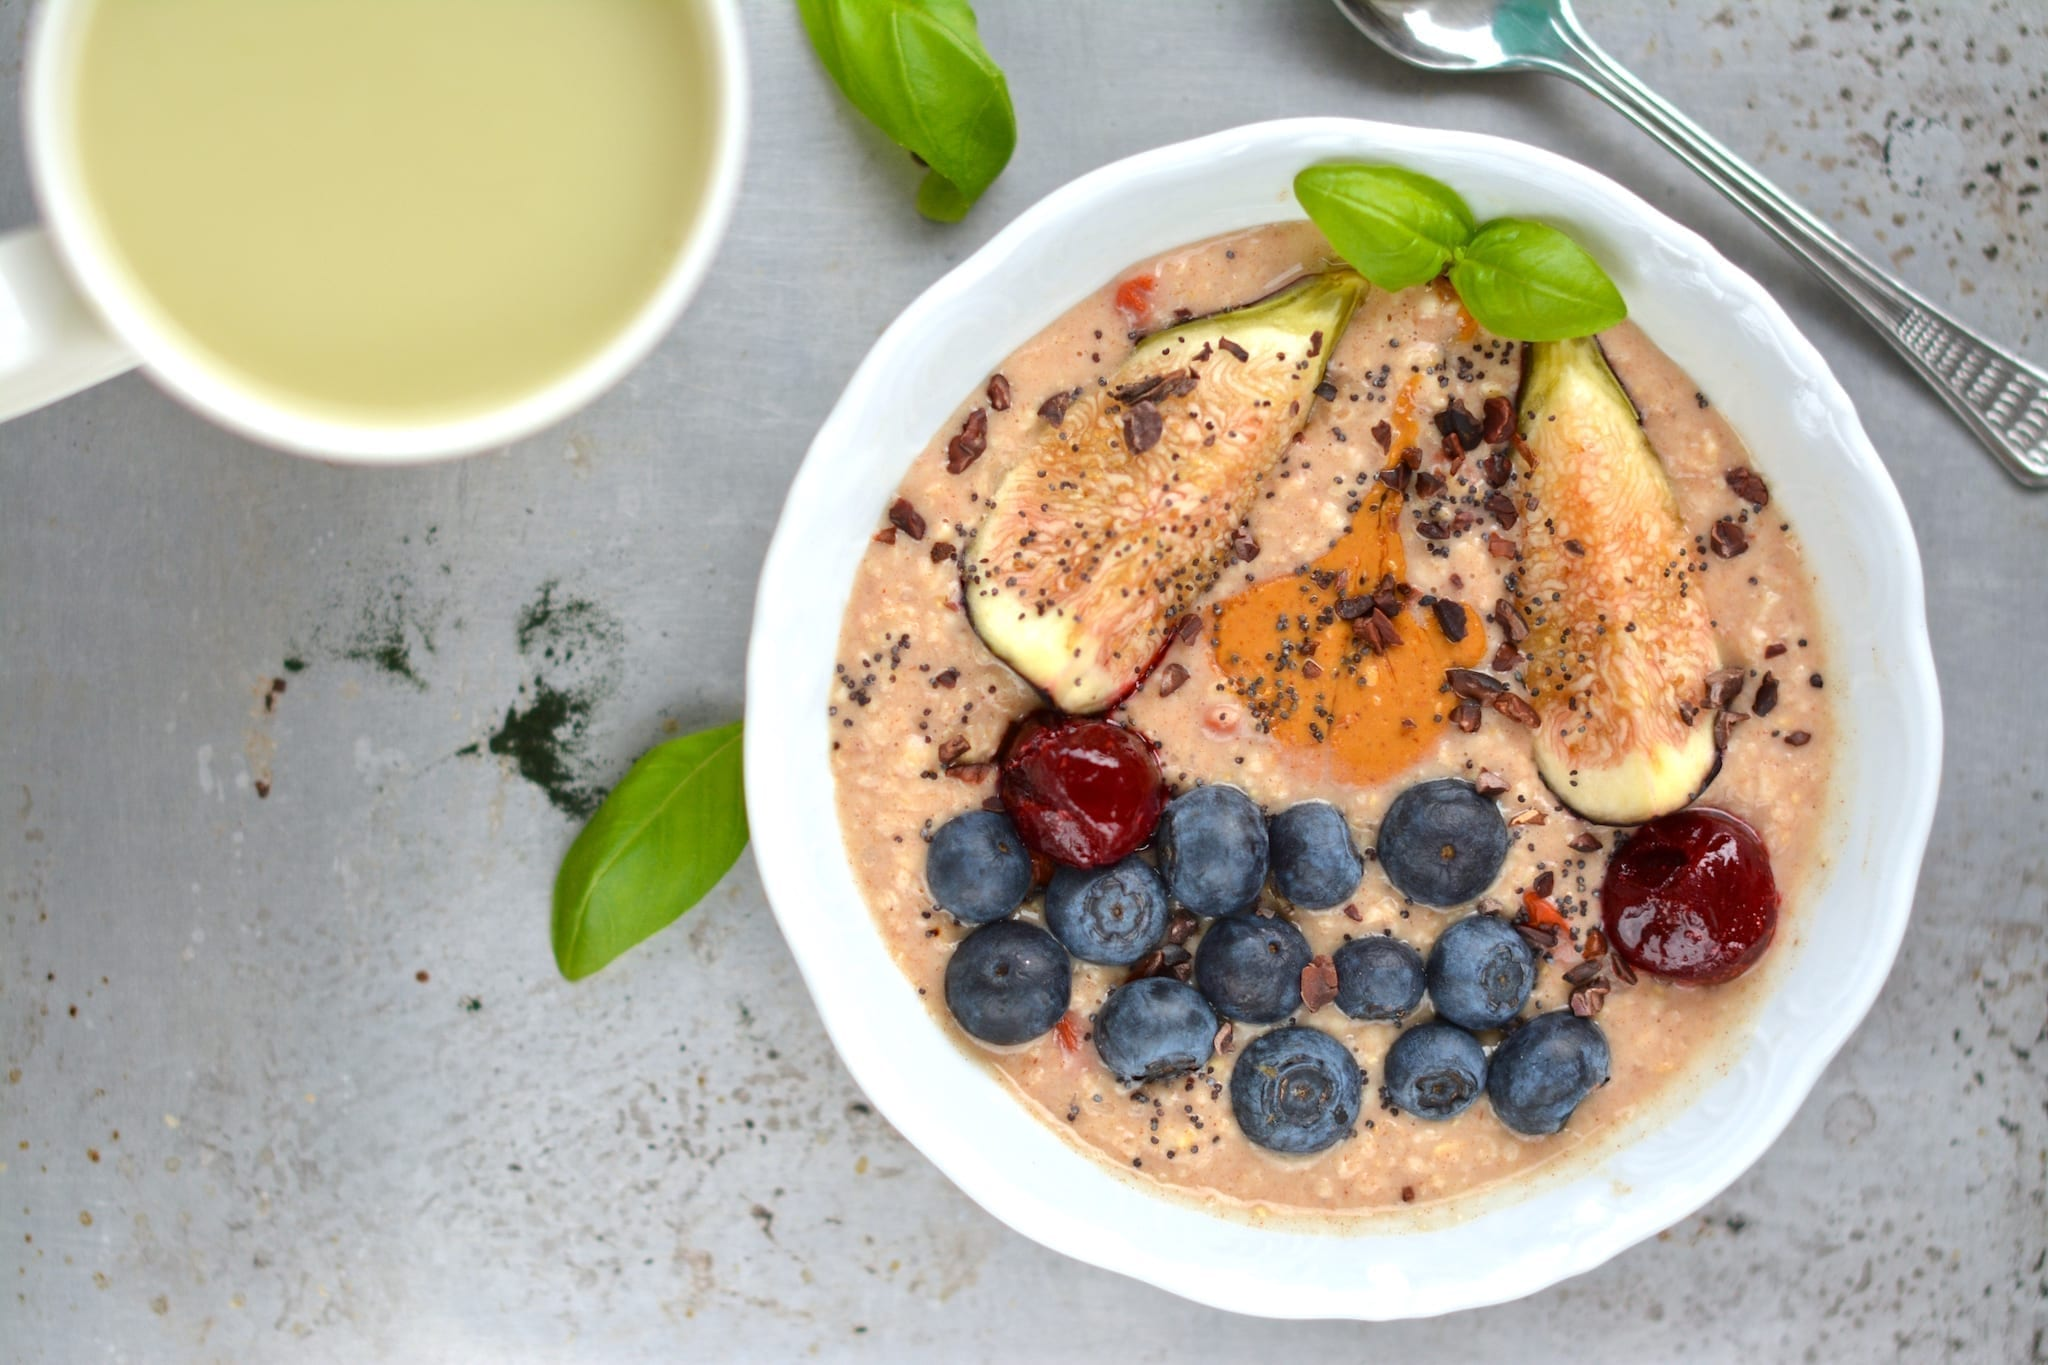 Oatmeal, Cinnamon-Figs-Goji Berries-Peanut Butter-Blueberries